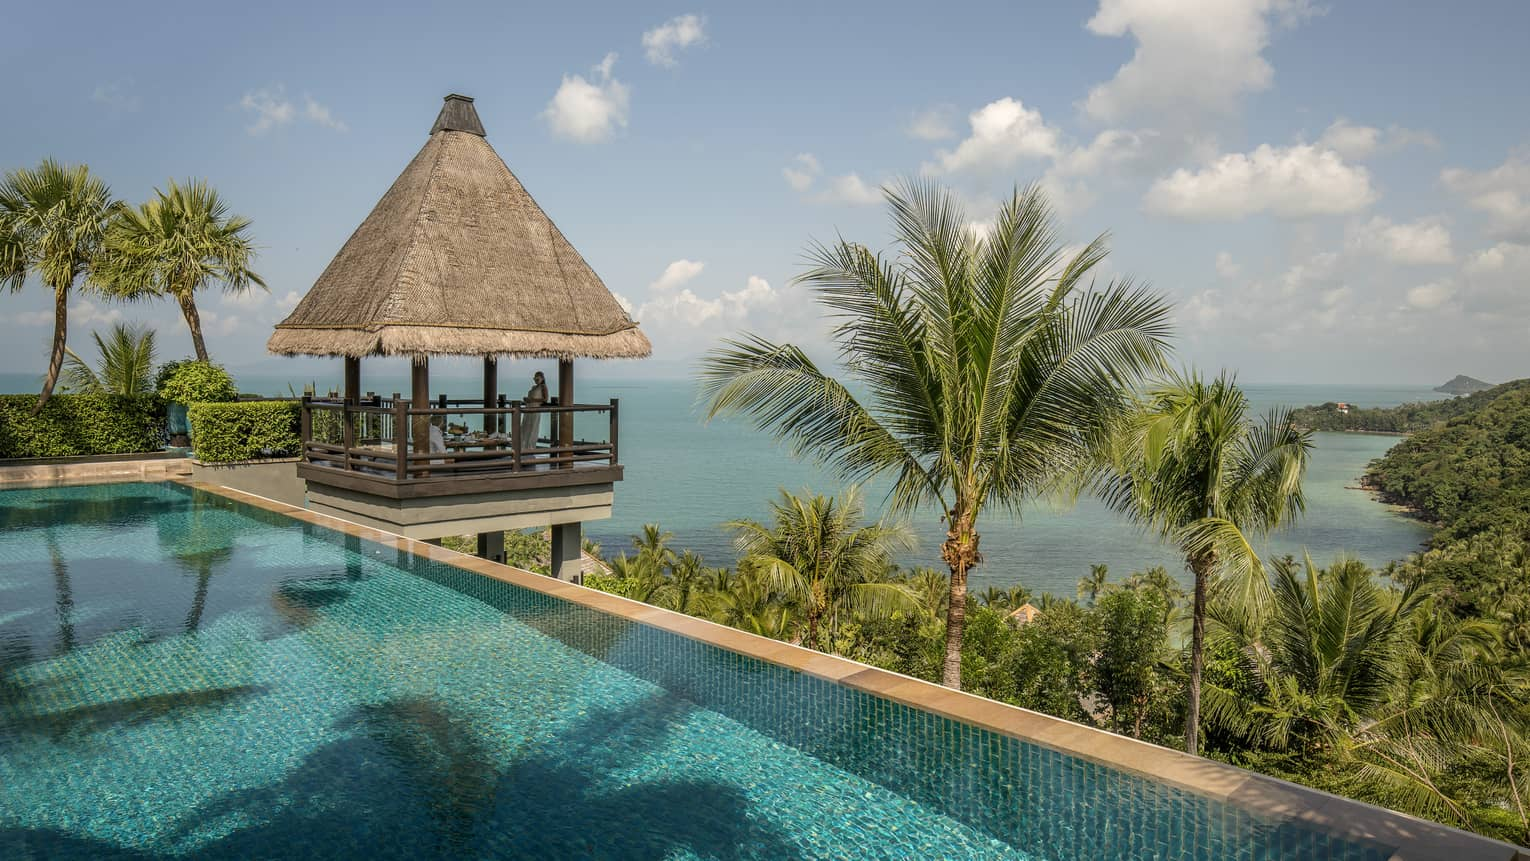 Thatched-roof pavilion at edge of outdoor swimming pool overlooking tropical trees, mountain, ocean